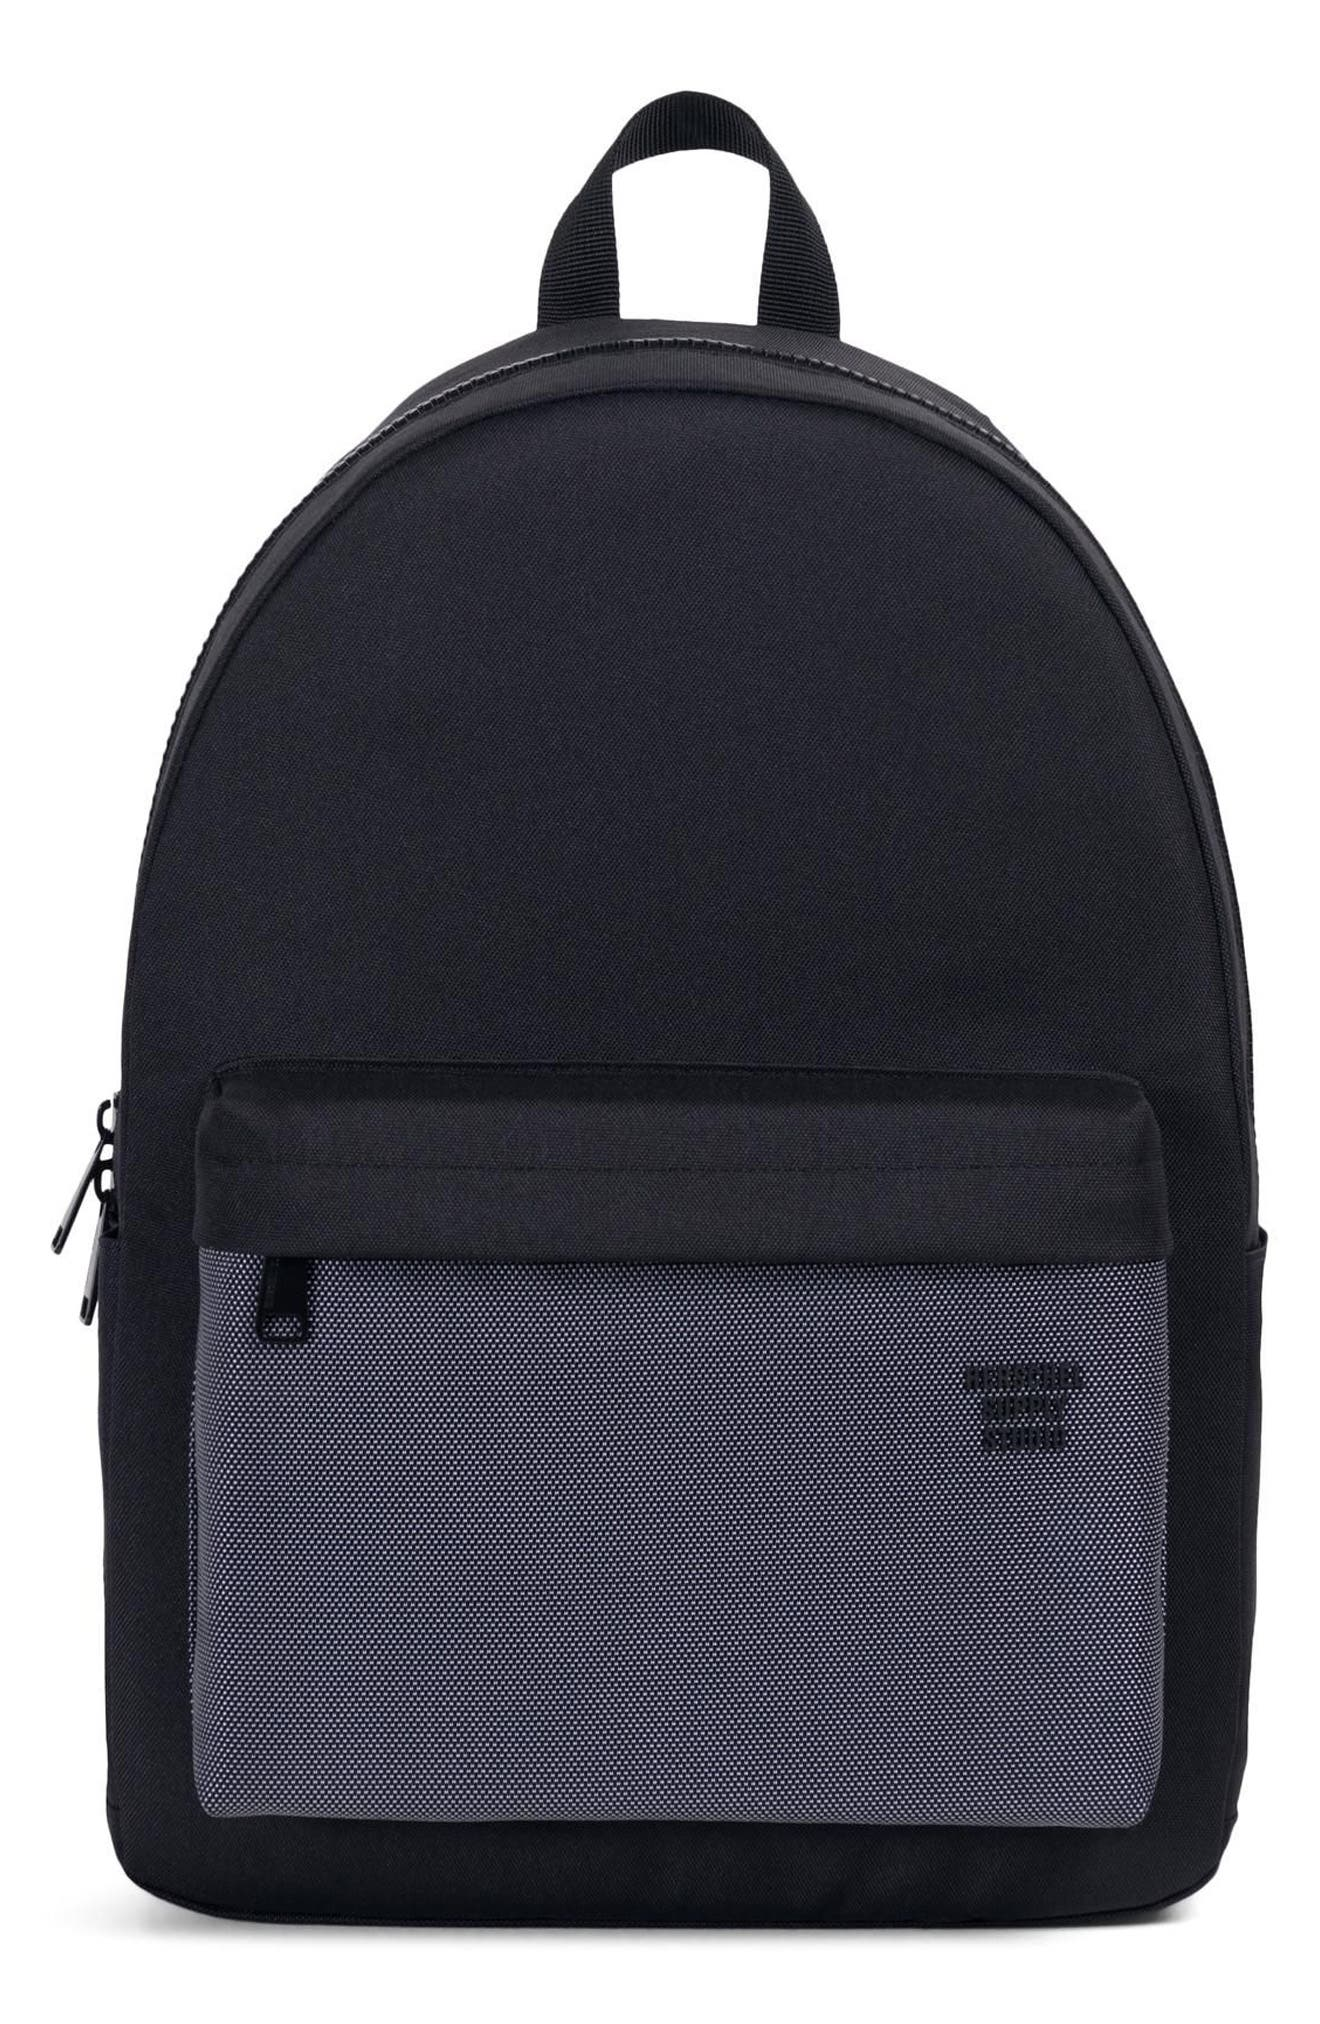 HERSCHEL SUPPLY CO. Studio Winlaw XL Backpack, Main, color, 001